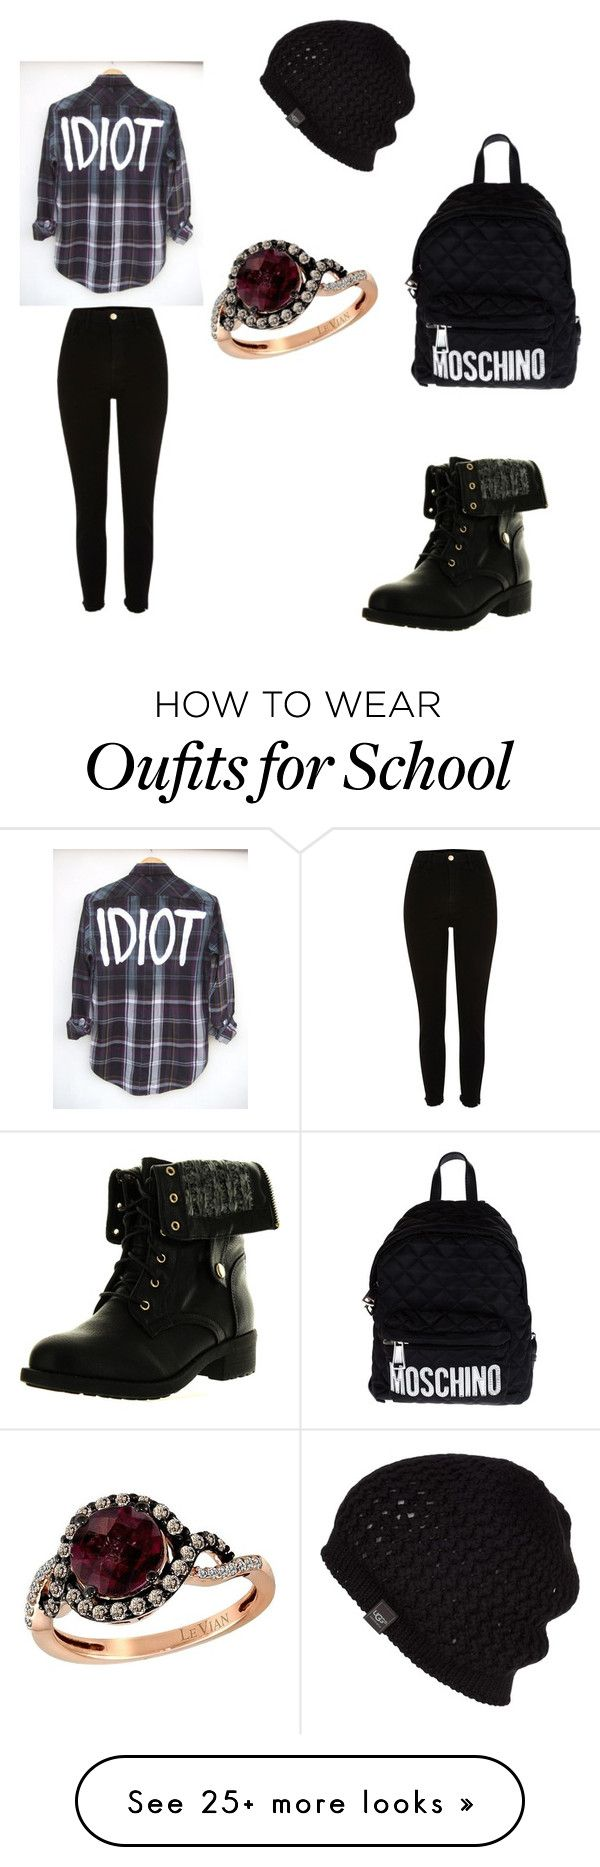 """School things 4"" by starrjames on Polyvore featuring Refresh, UGG Australia, Moschino and LE VIAN"